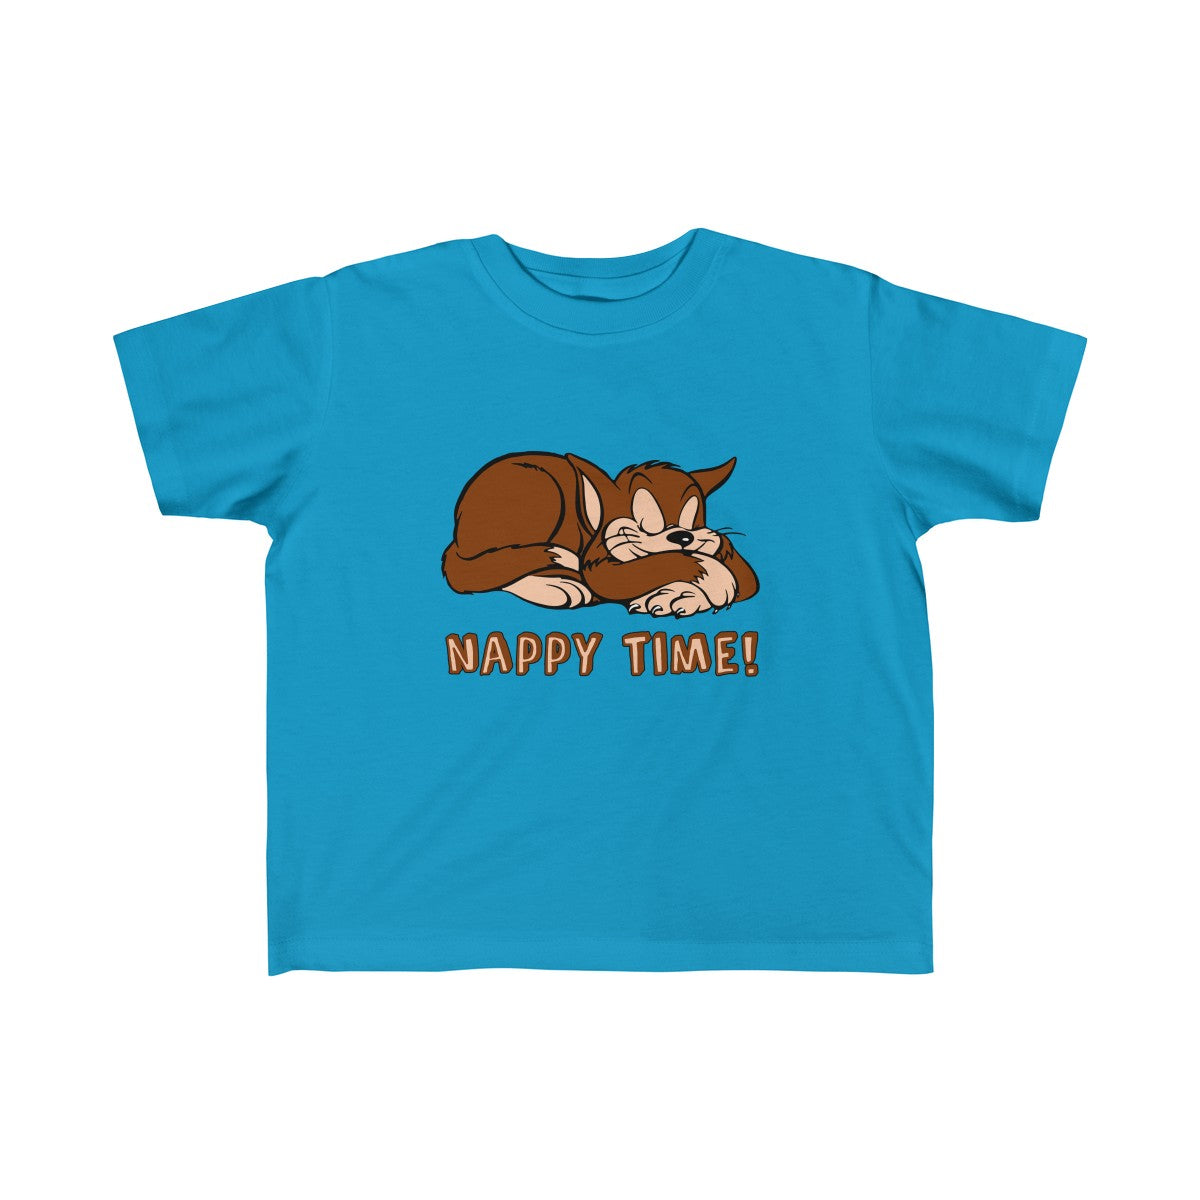 Nappy Time! with Sleeping Cat Toddler Fine Jersey Tee - PureDesignTees